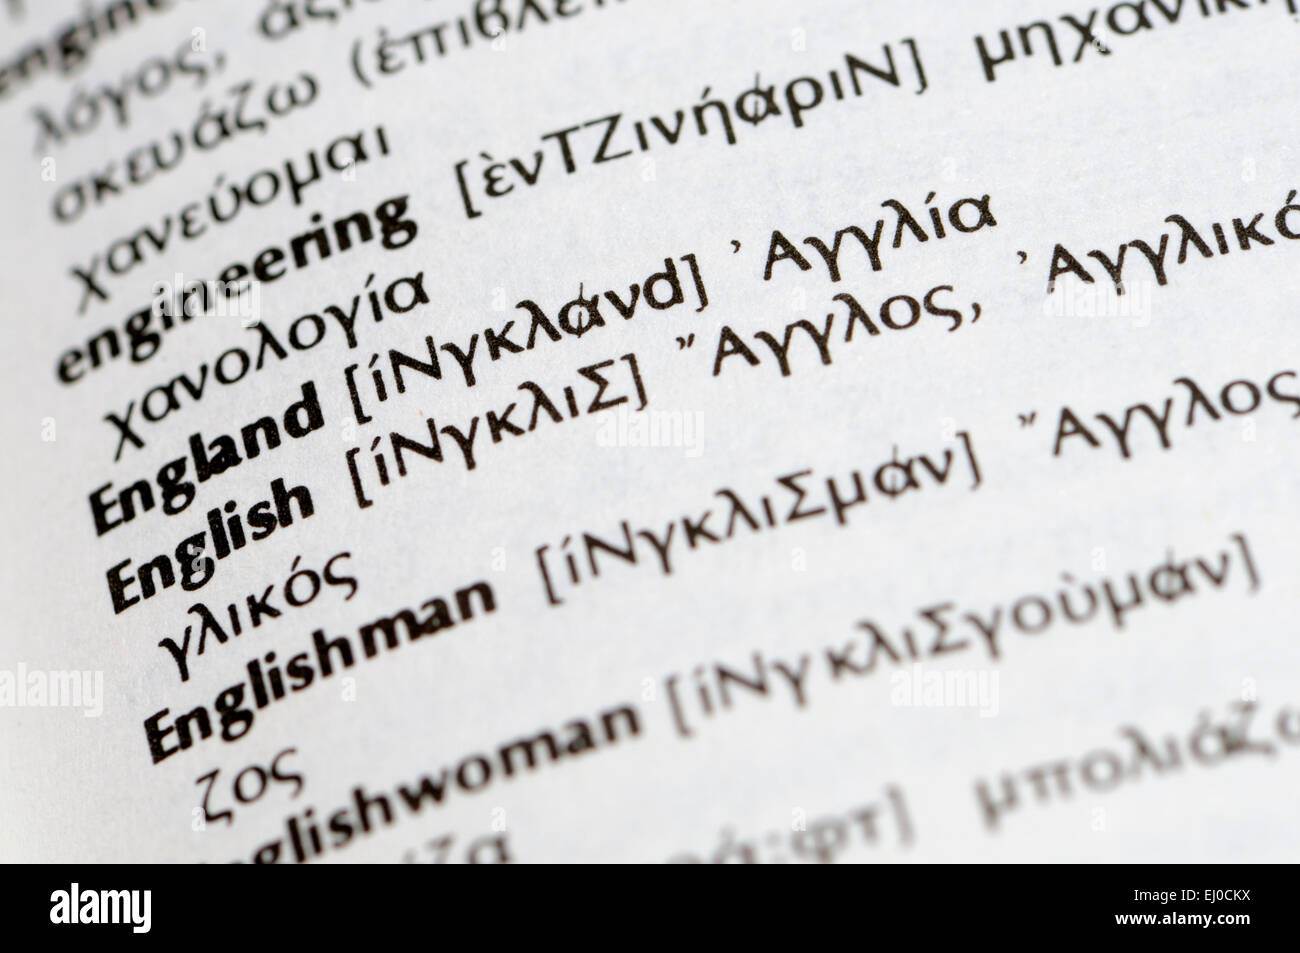 England / English translated in a Greek dictionary - Stock Image